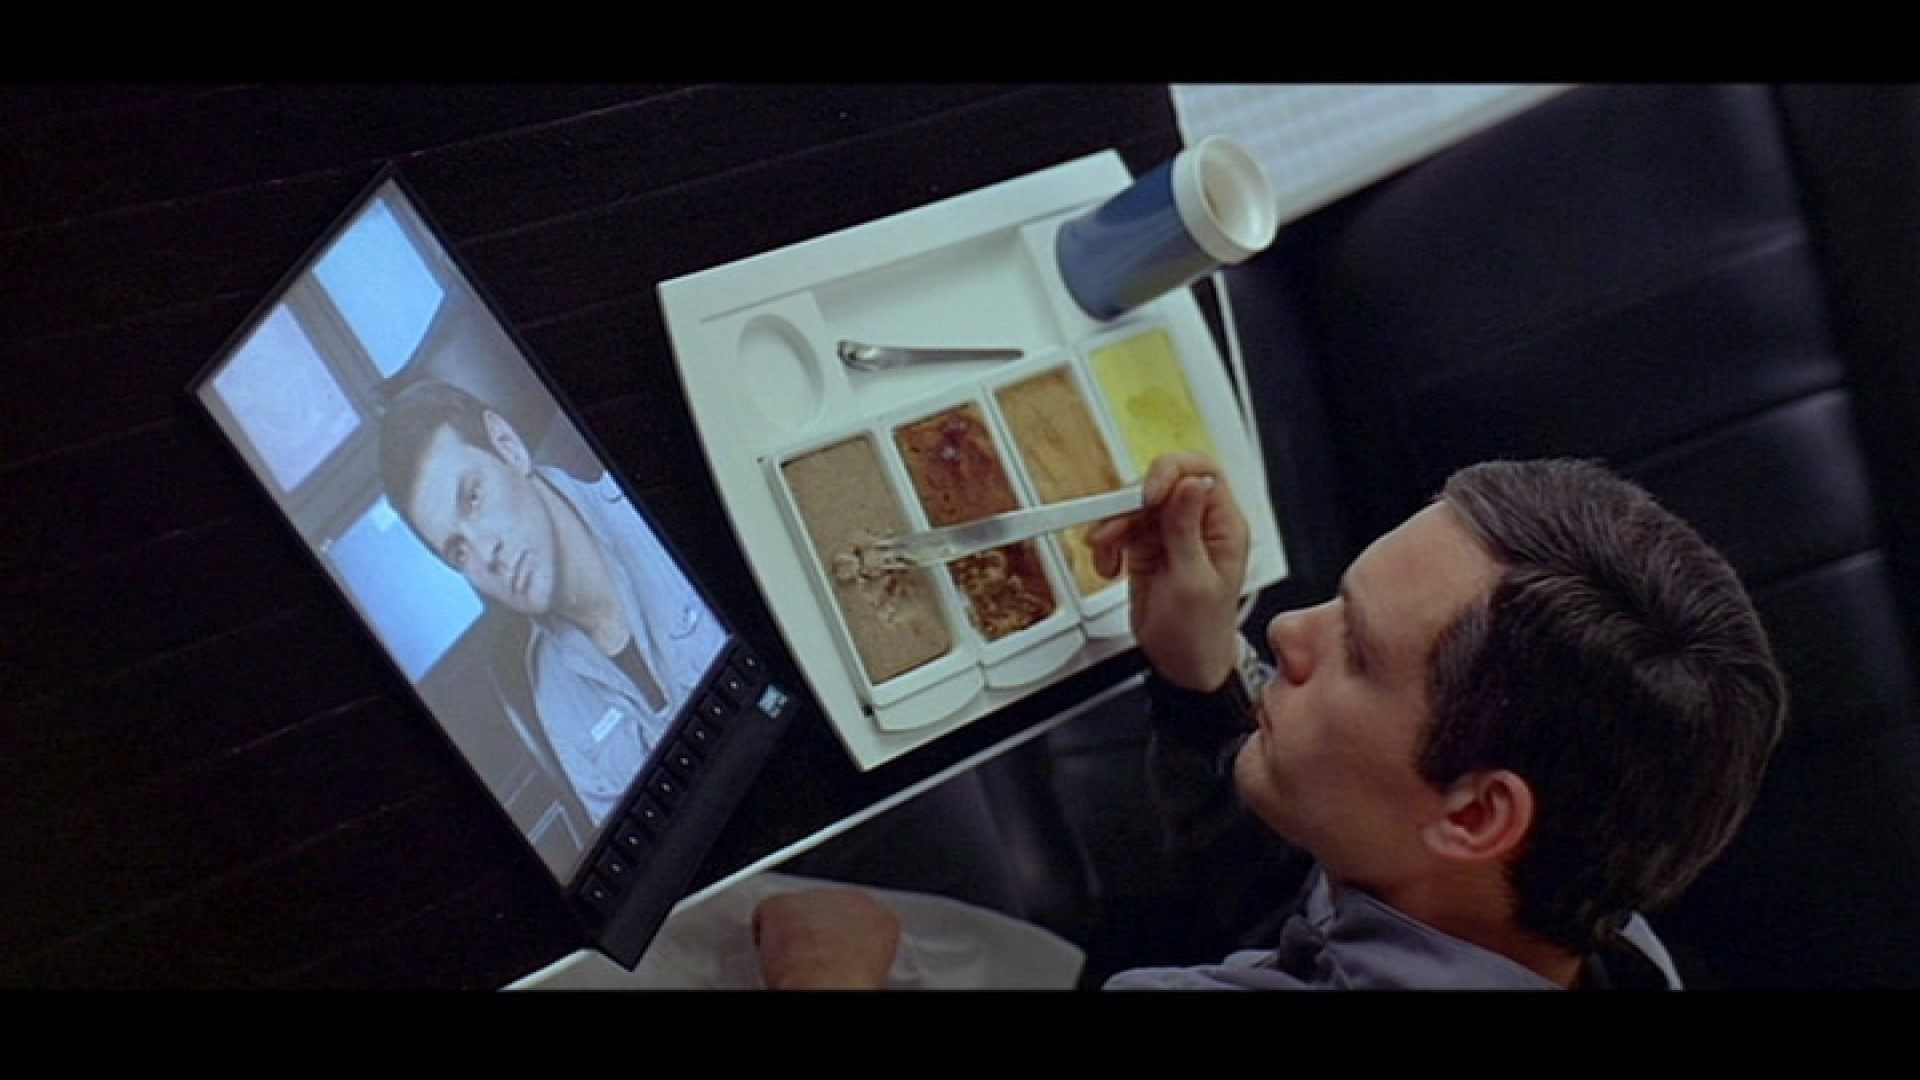 2001: A SPACE ODYSSEY (1968) - Discovery One Cutlery - Image 8 of 8